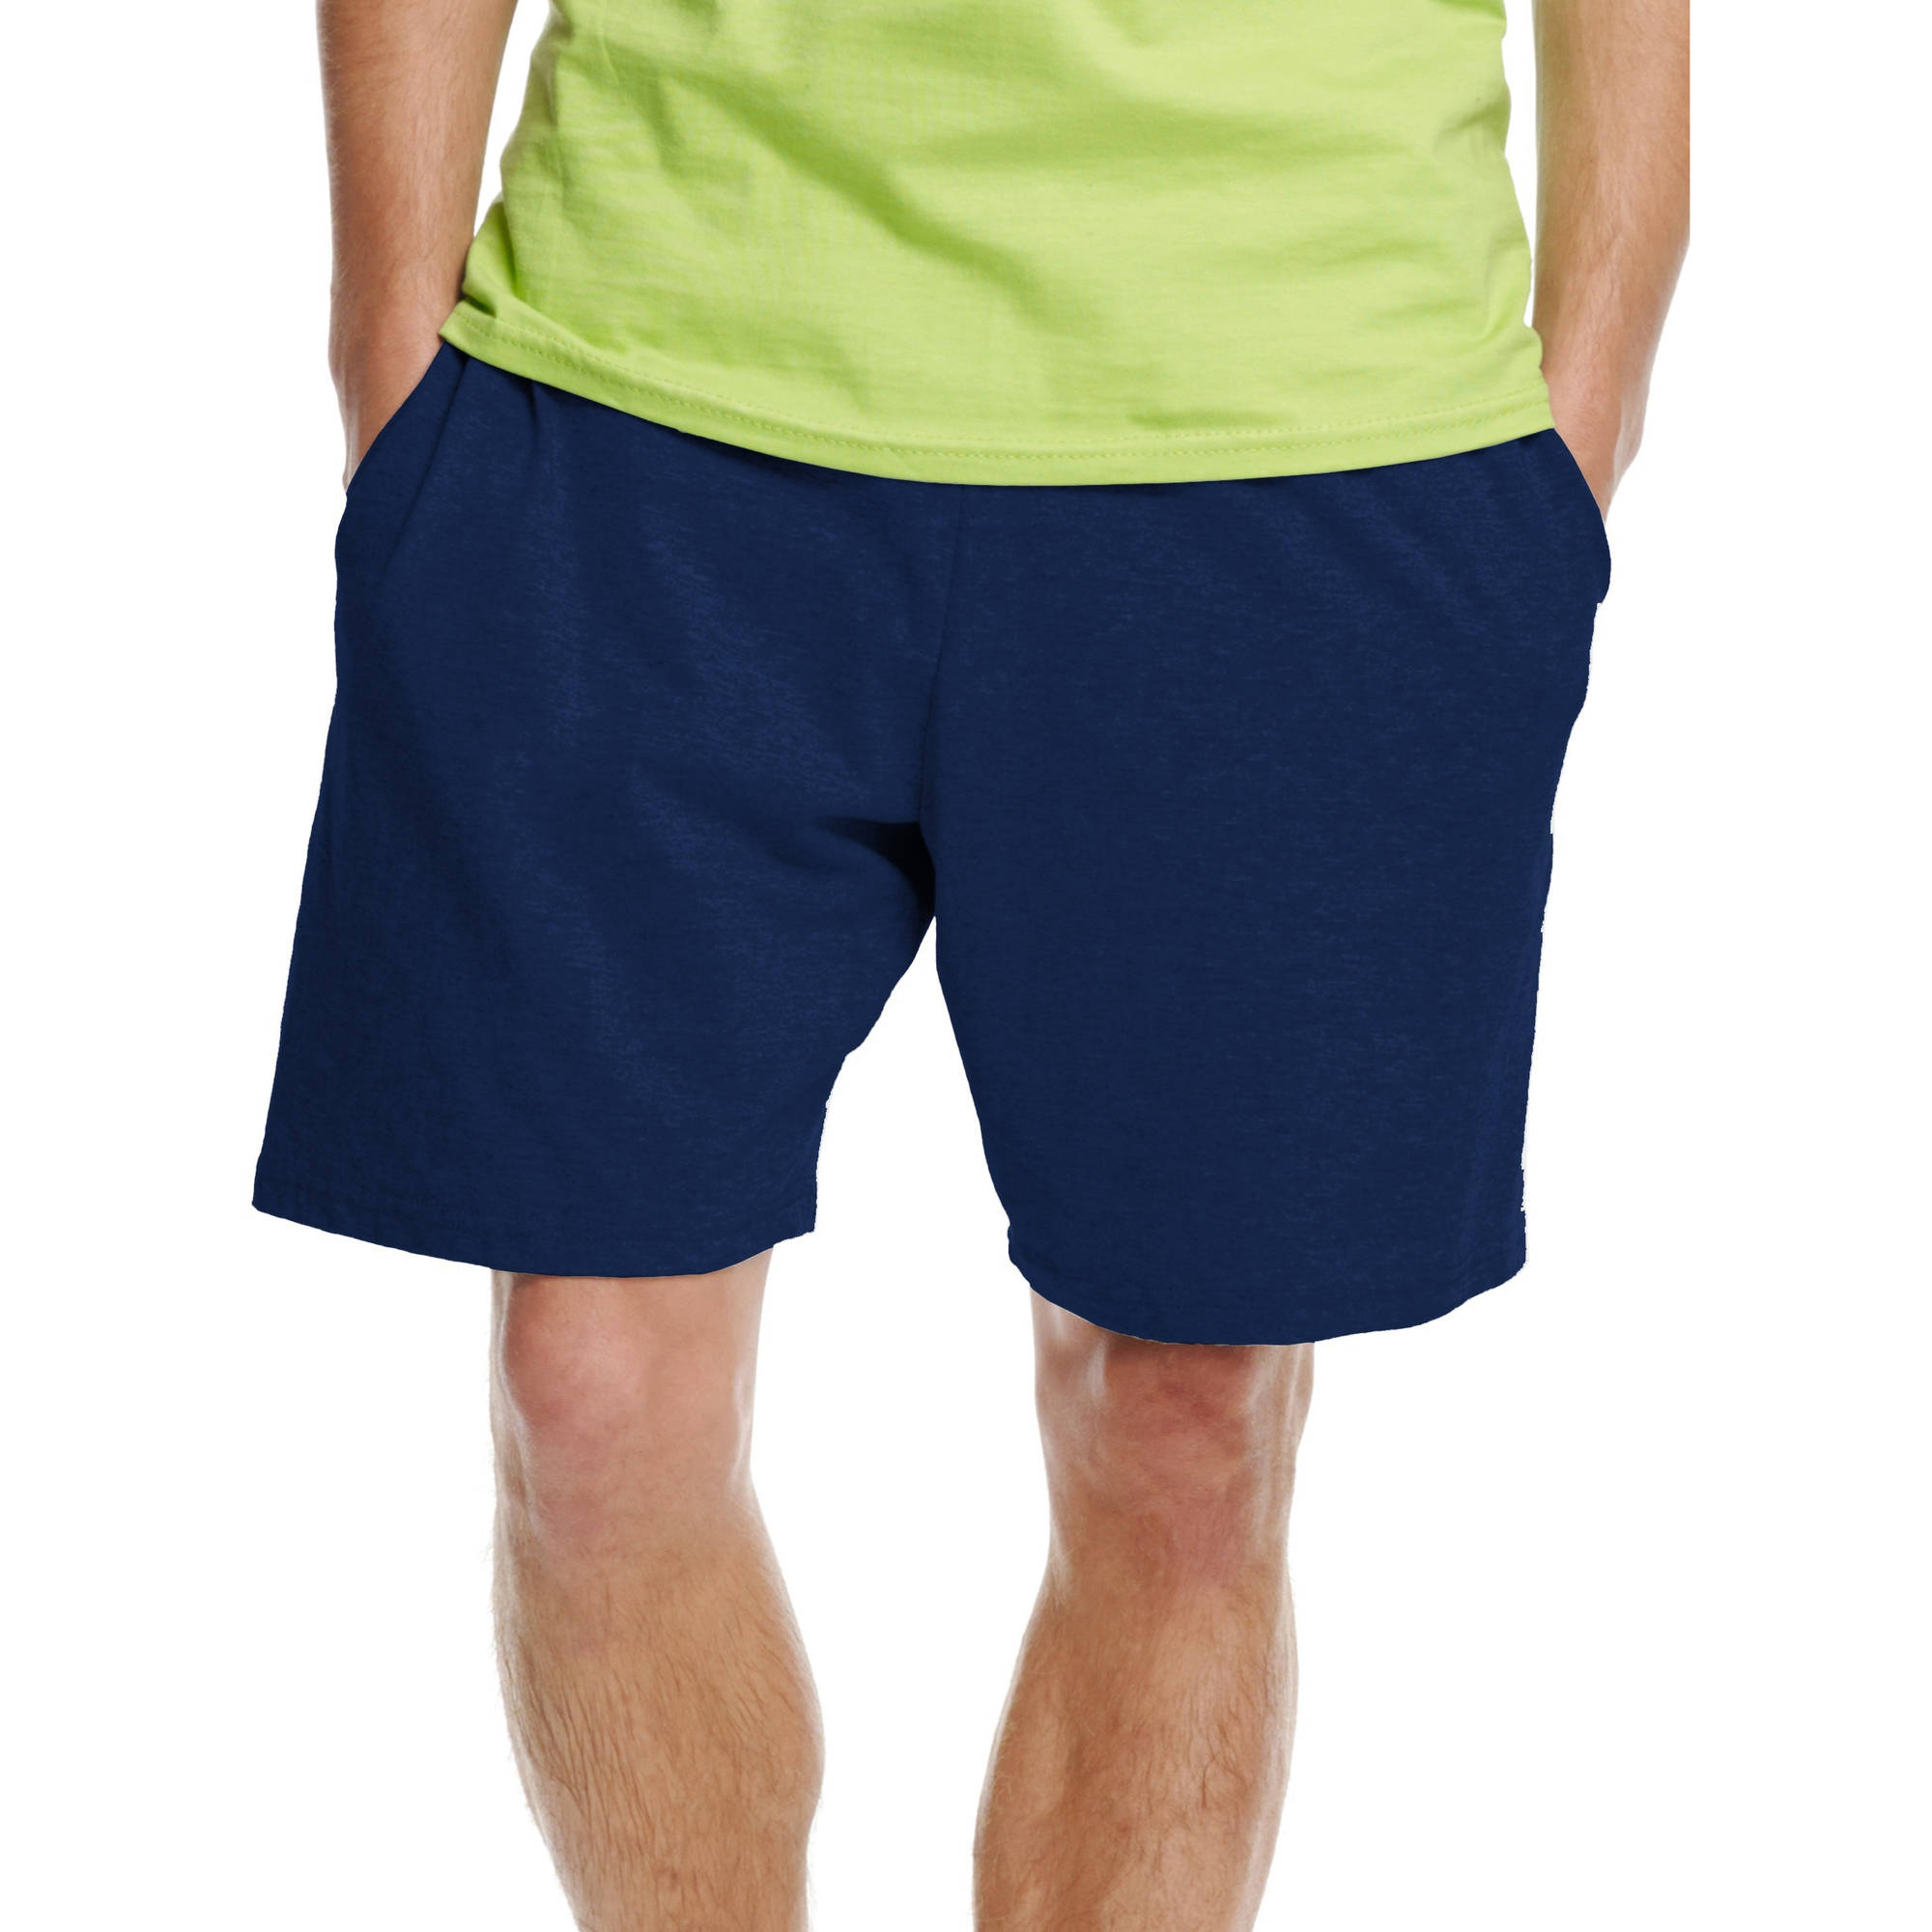 Hanes Men's Jersey Pocket Shorts - Walmart.com